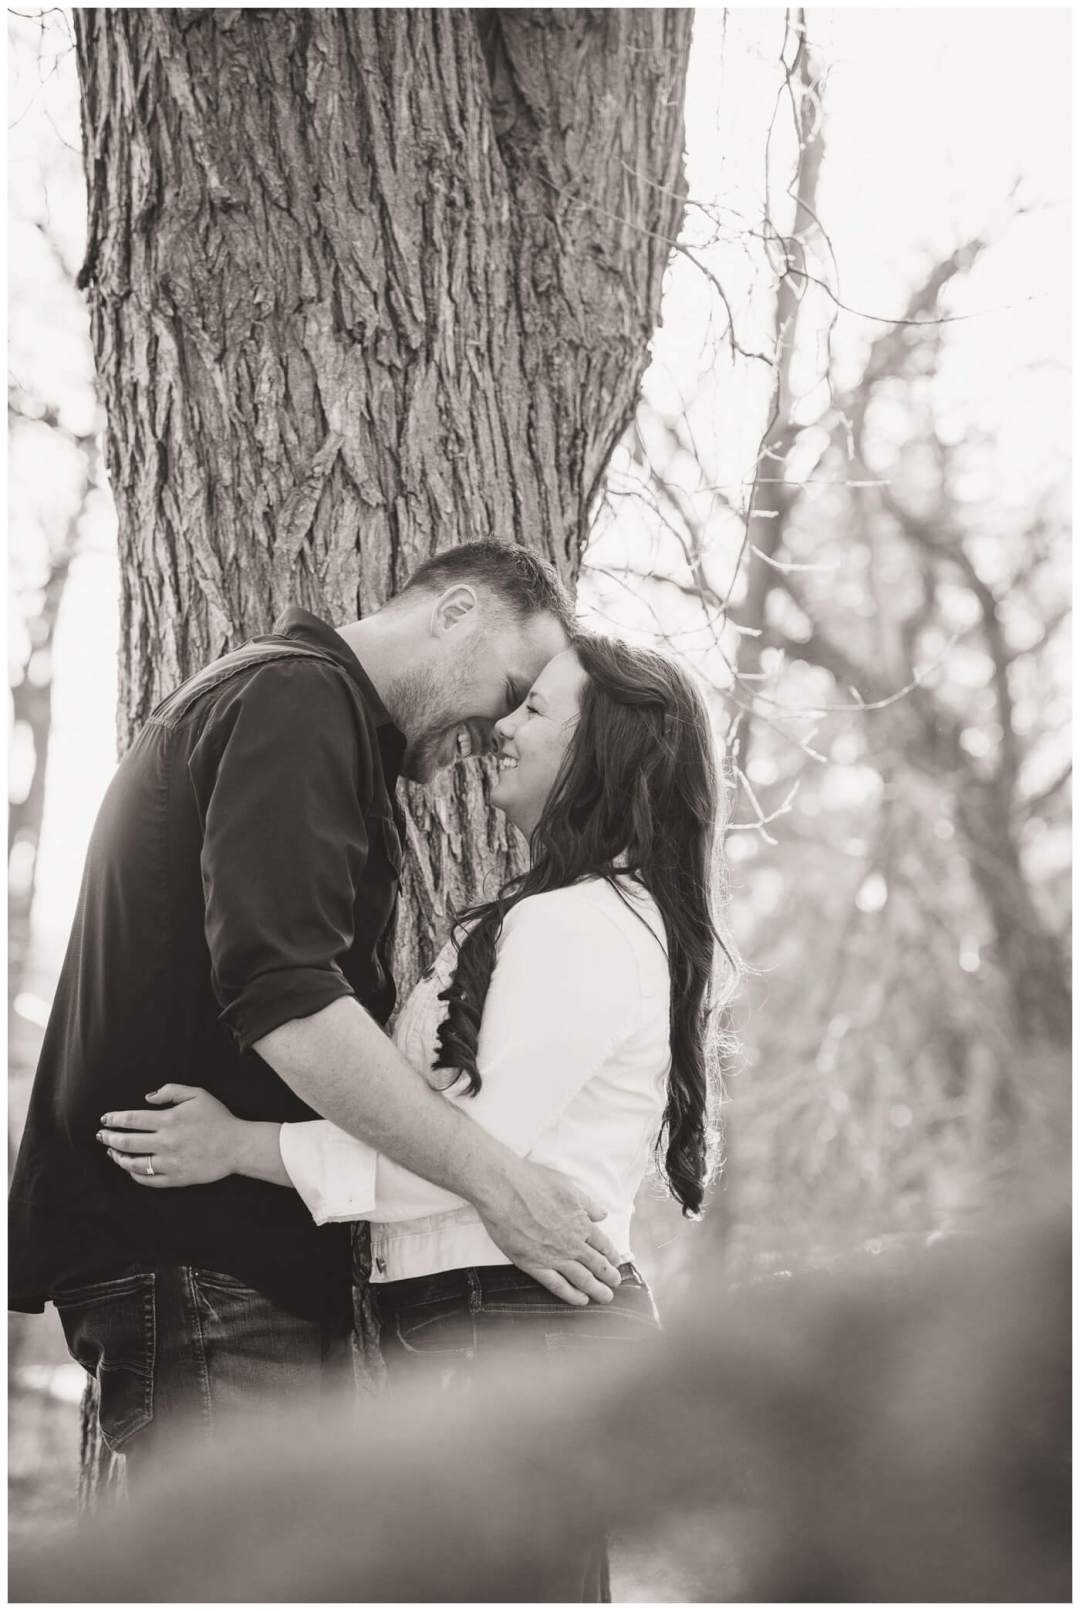 Travis & Coralynn Regina Engagement Session- Engaged couple nuzzling in Wascana Park